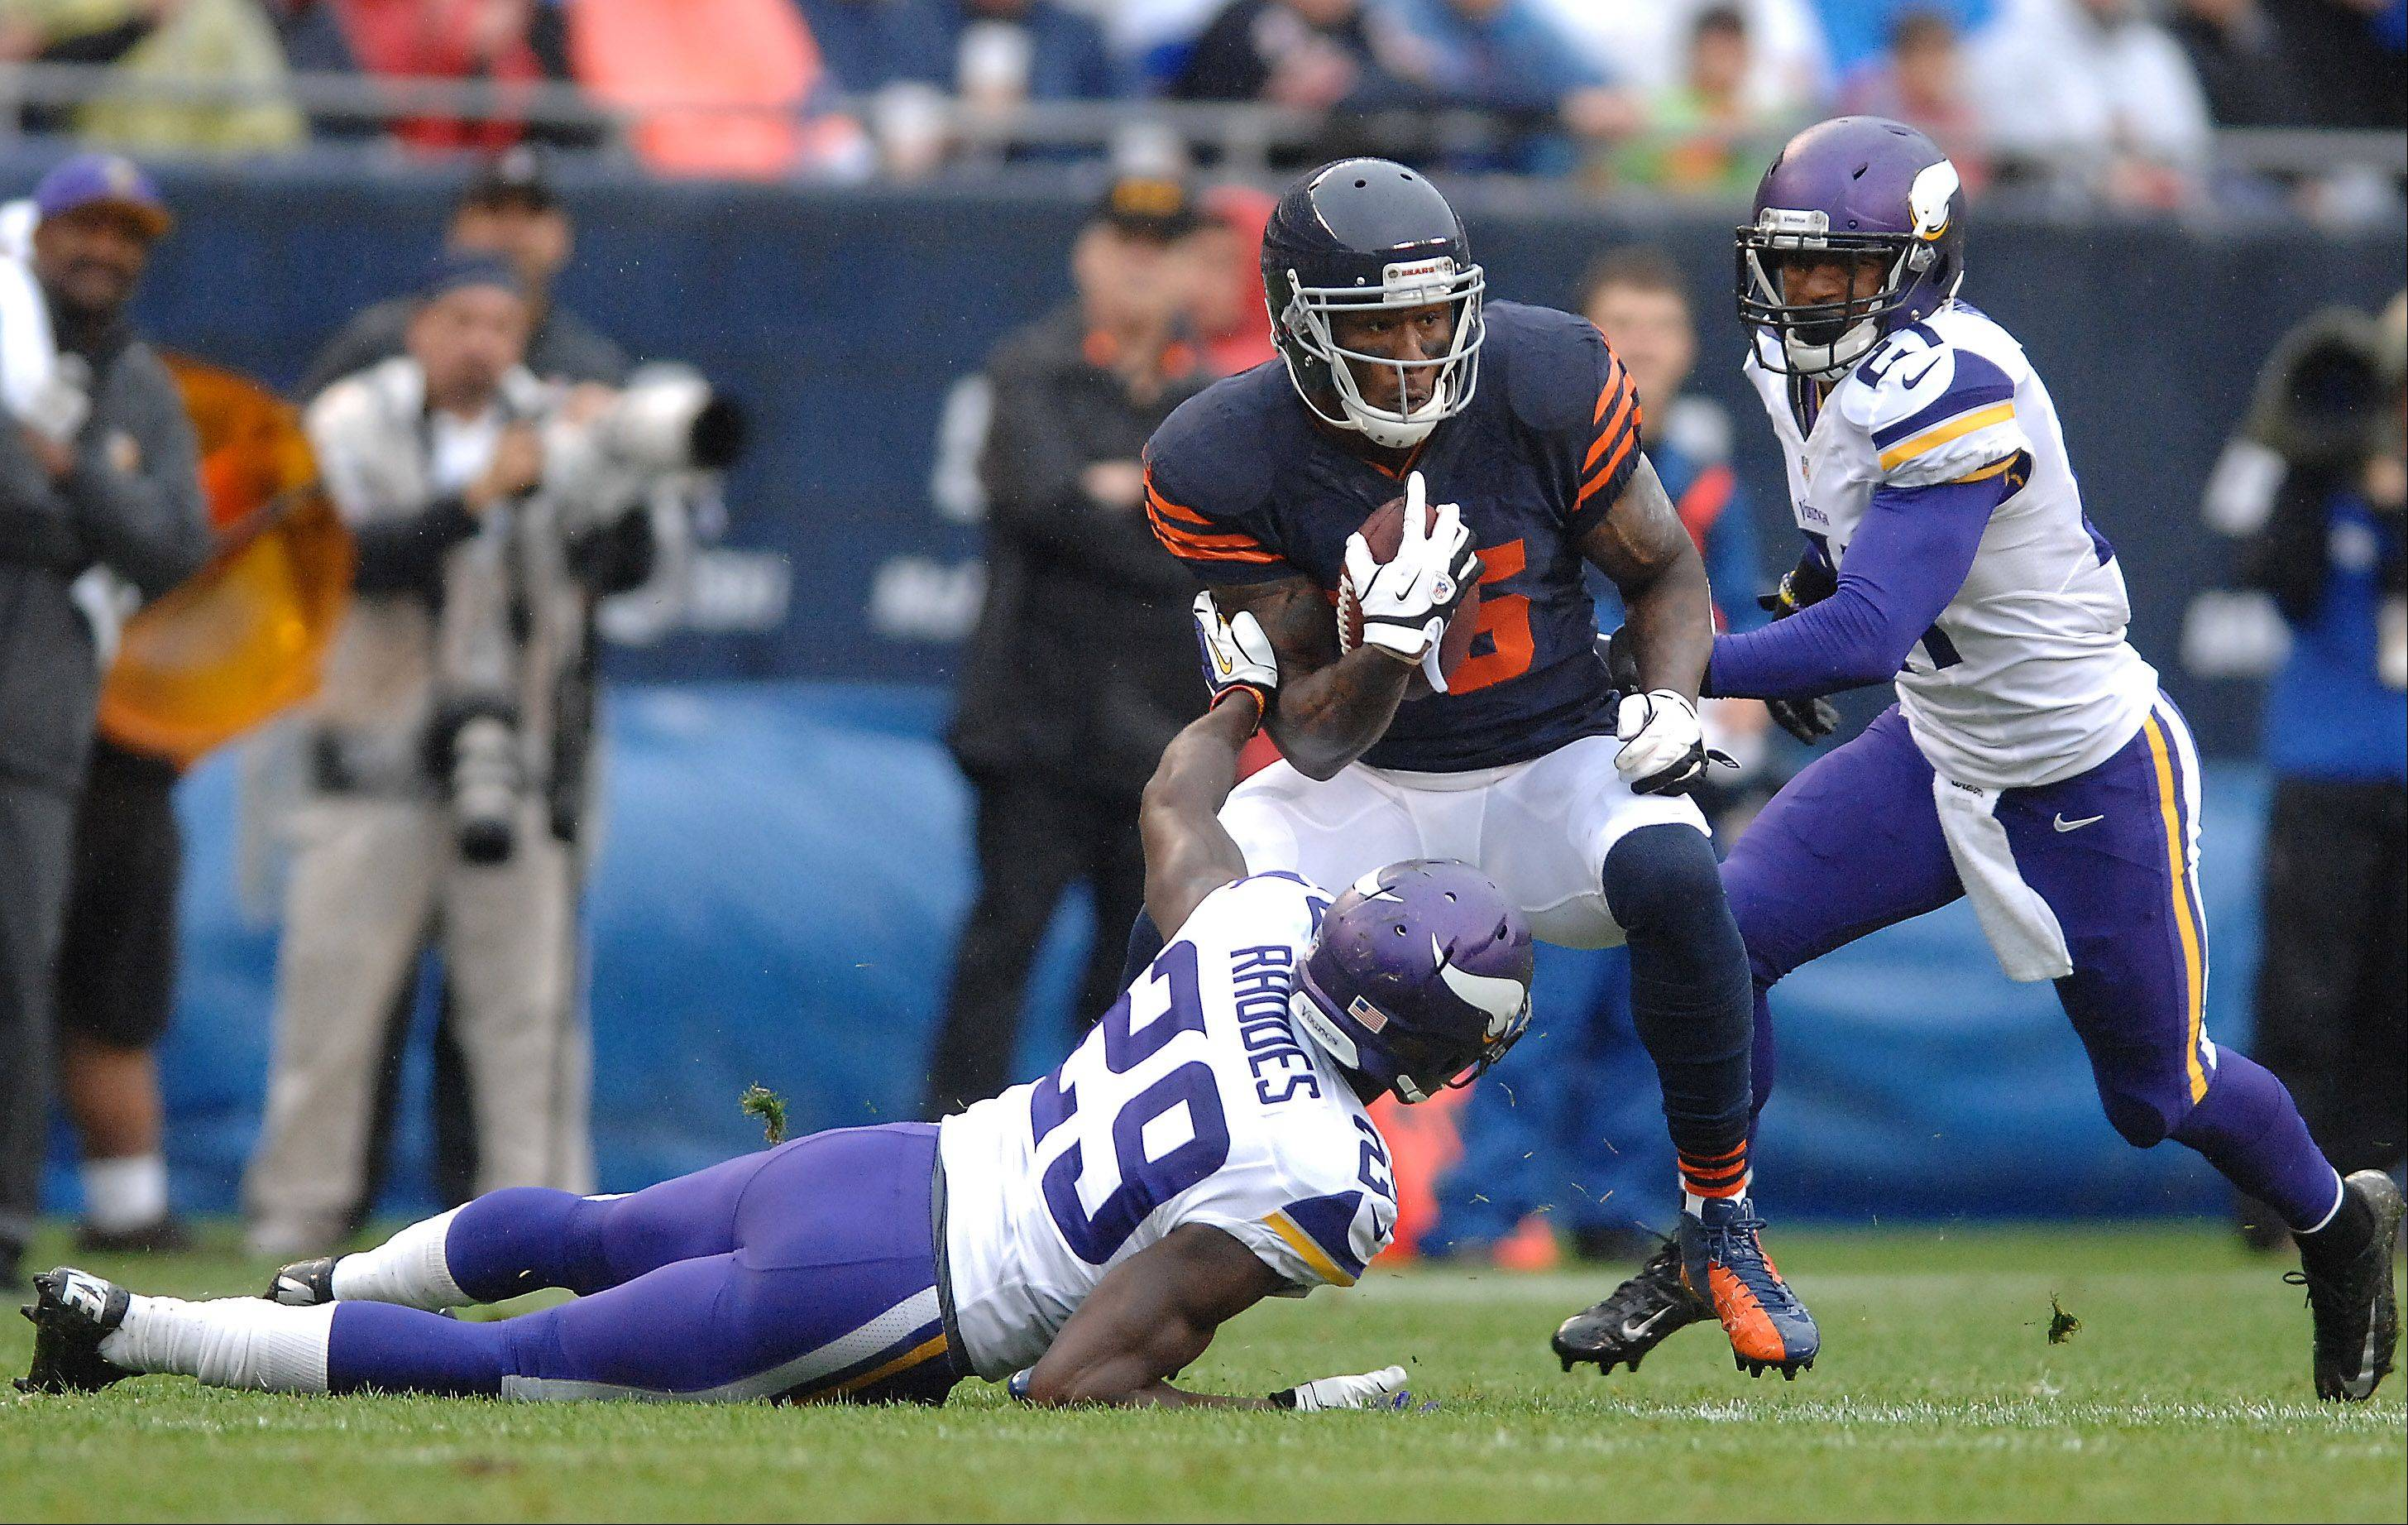 Chicago Bears wide receiver Brandon Marshall (15) puts a move on Minnesota Vikings cornerback Xavier Rhodes (29) to pick up some extra yards during Sunday's game at Soldier Field in Chicago.